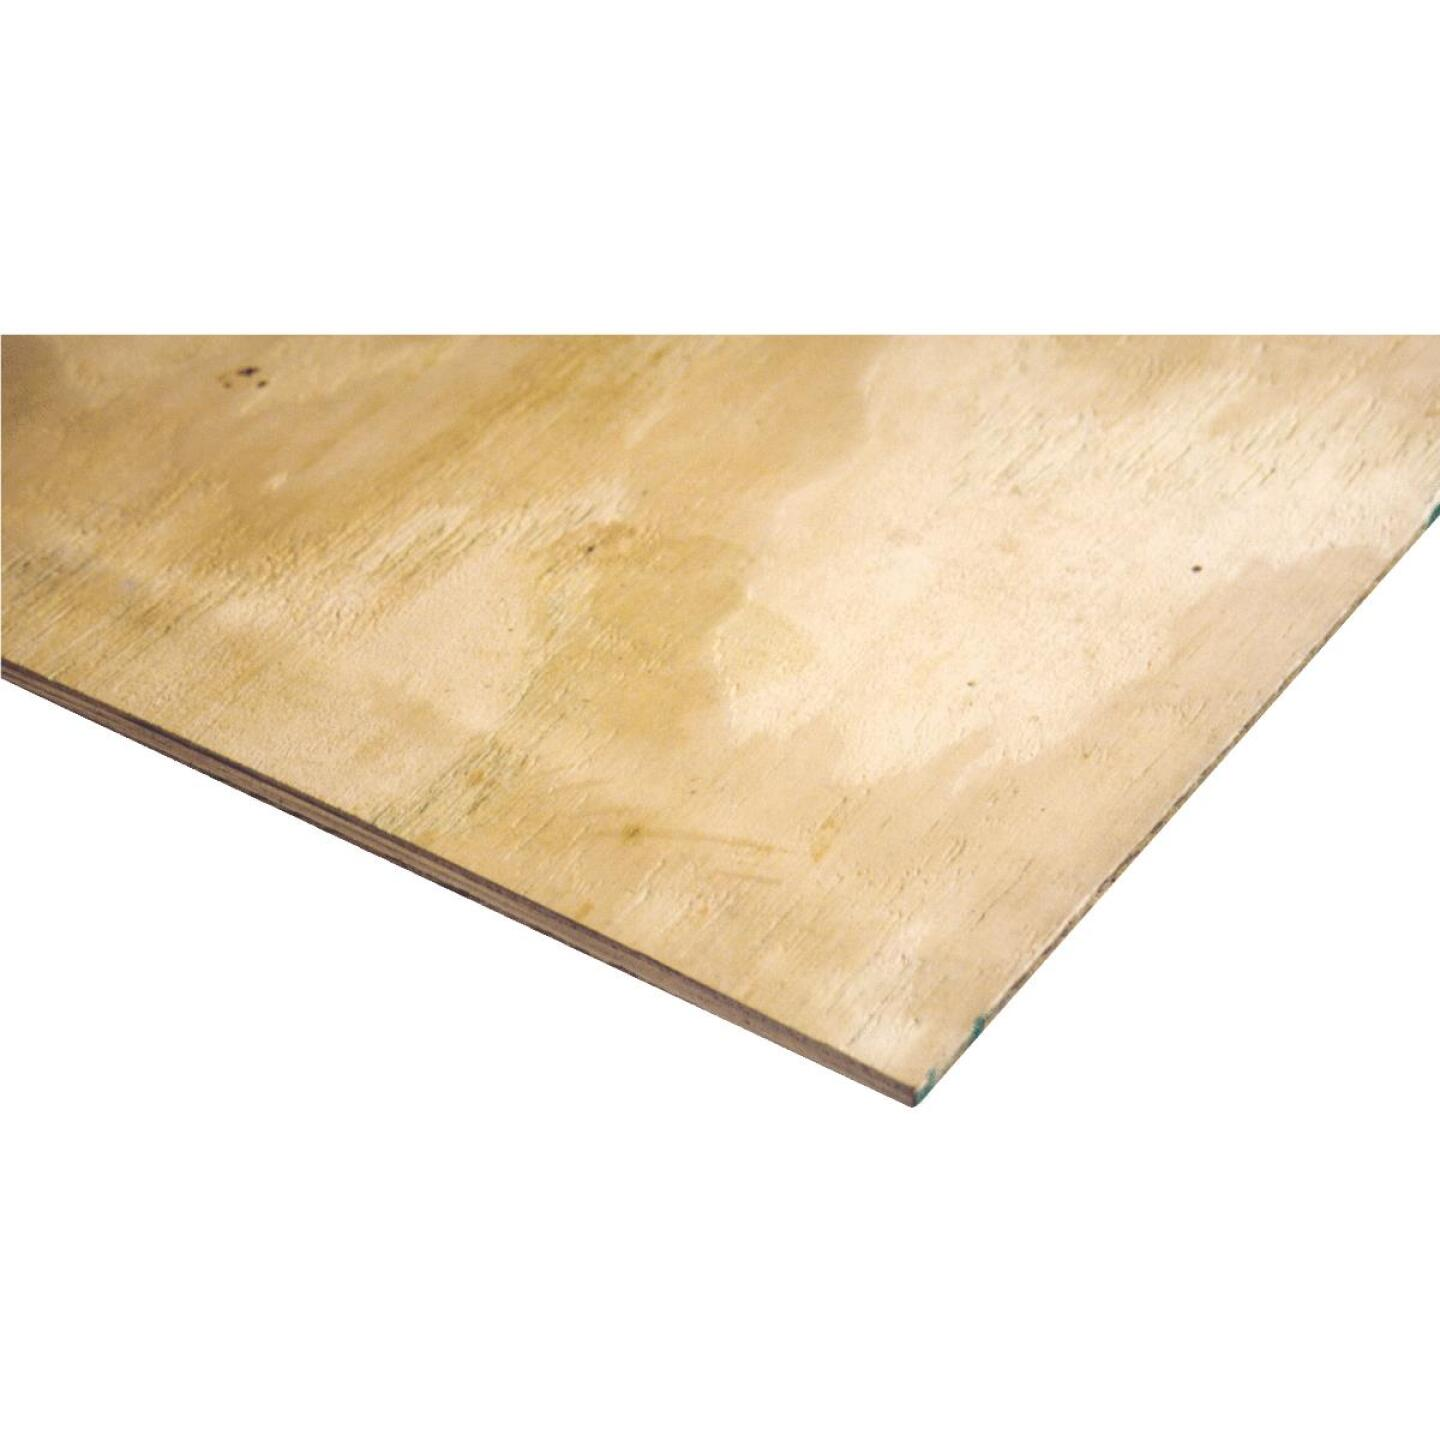 Universal Forest Products 3/4 In. x 24 In. x 48 In. BCX Pine Plywood Image 1